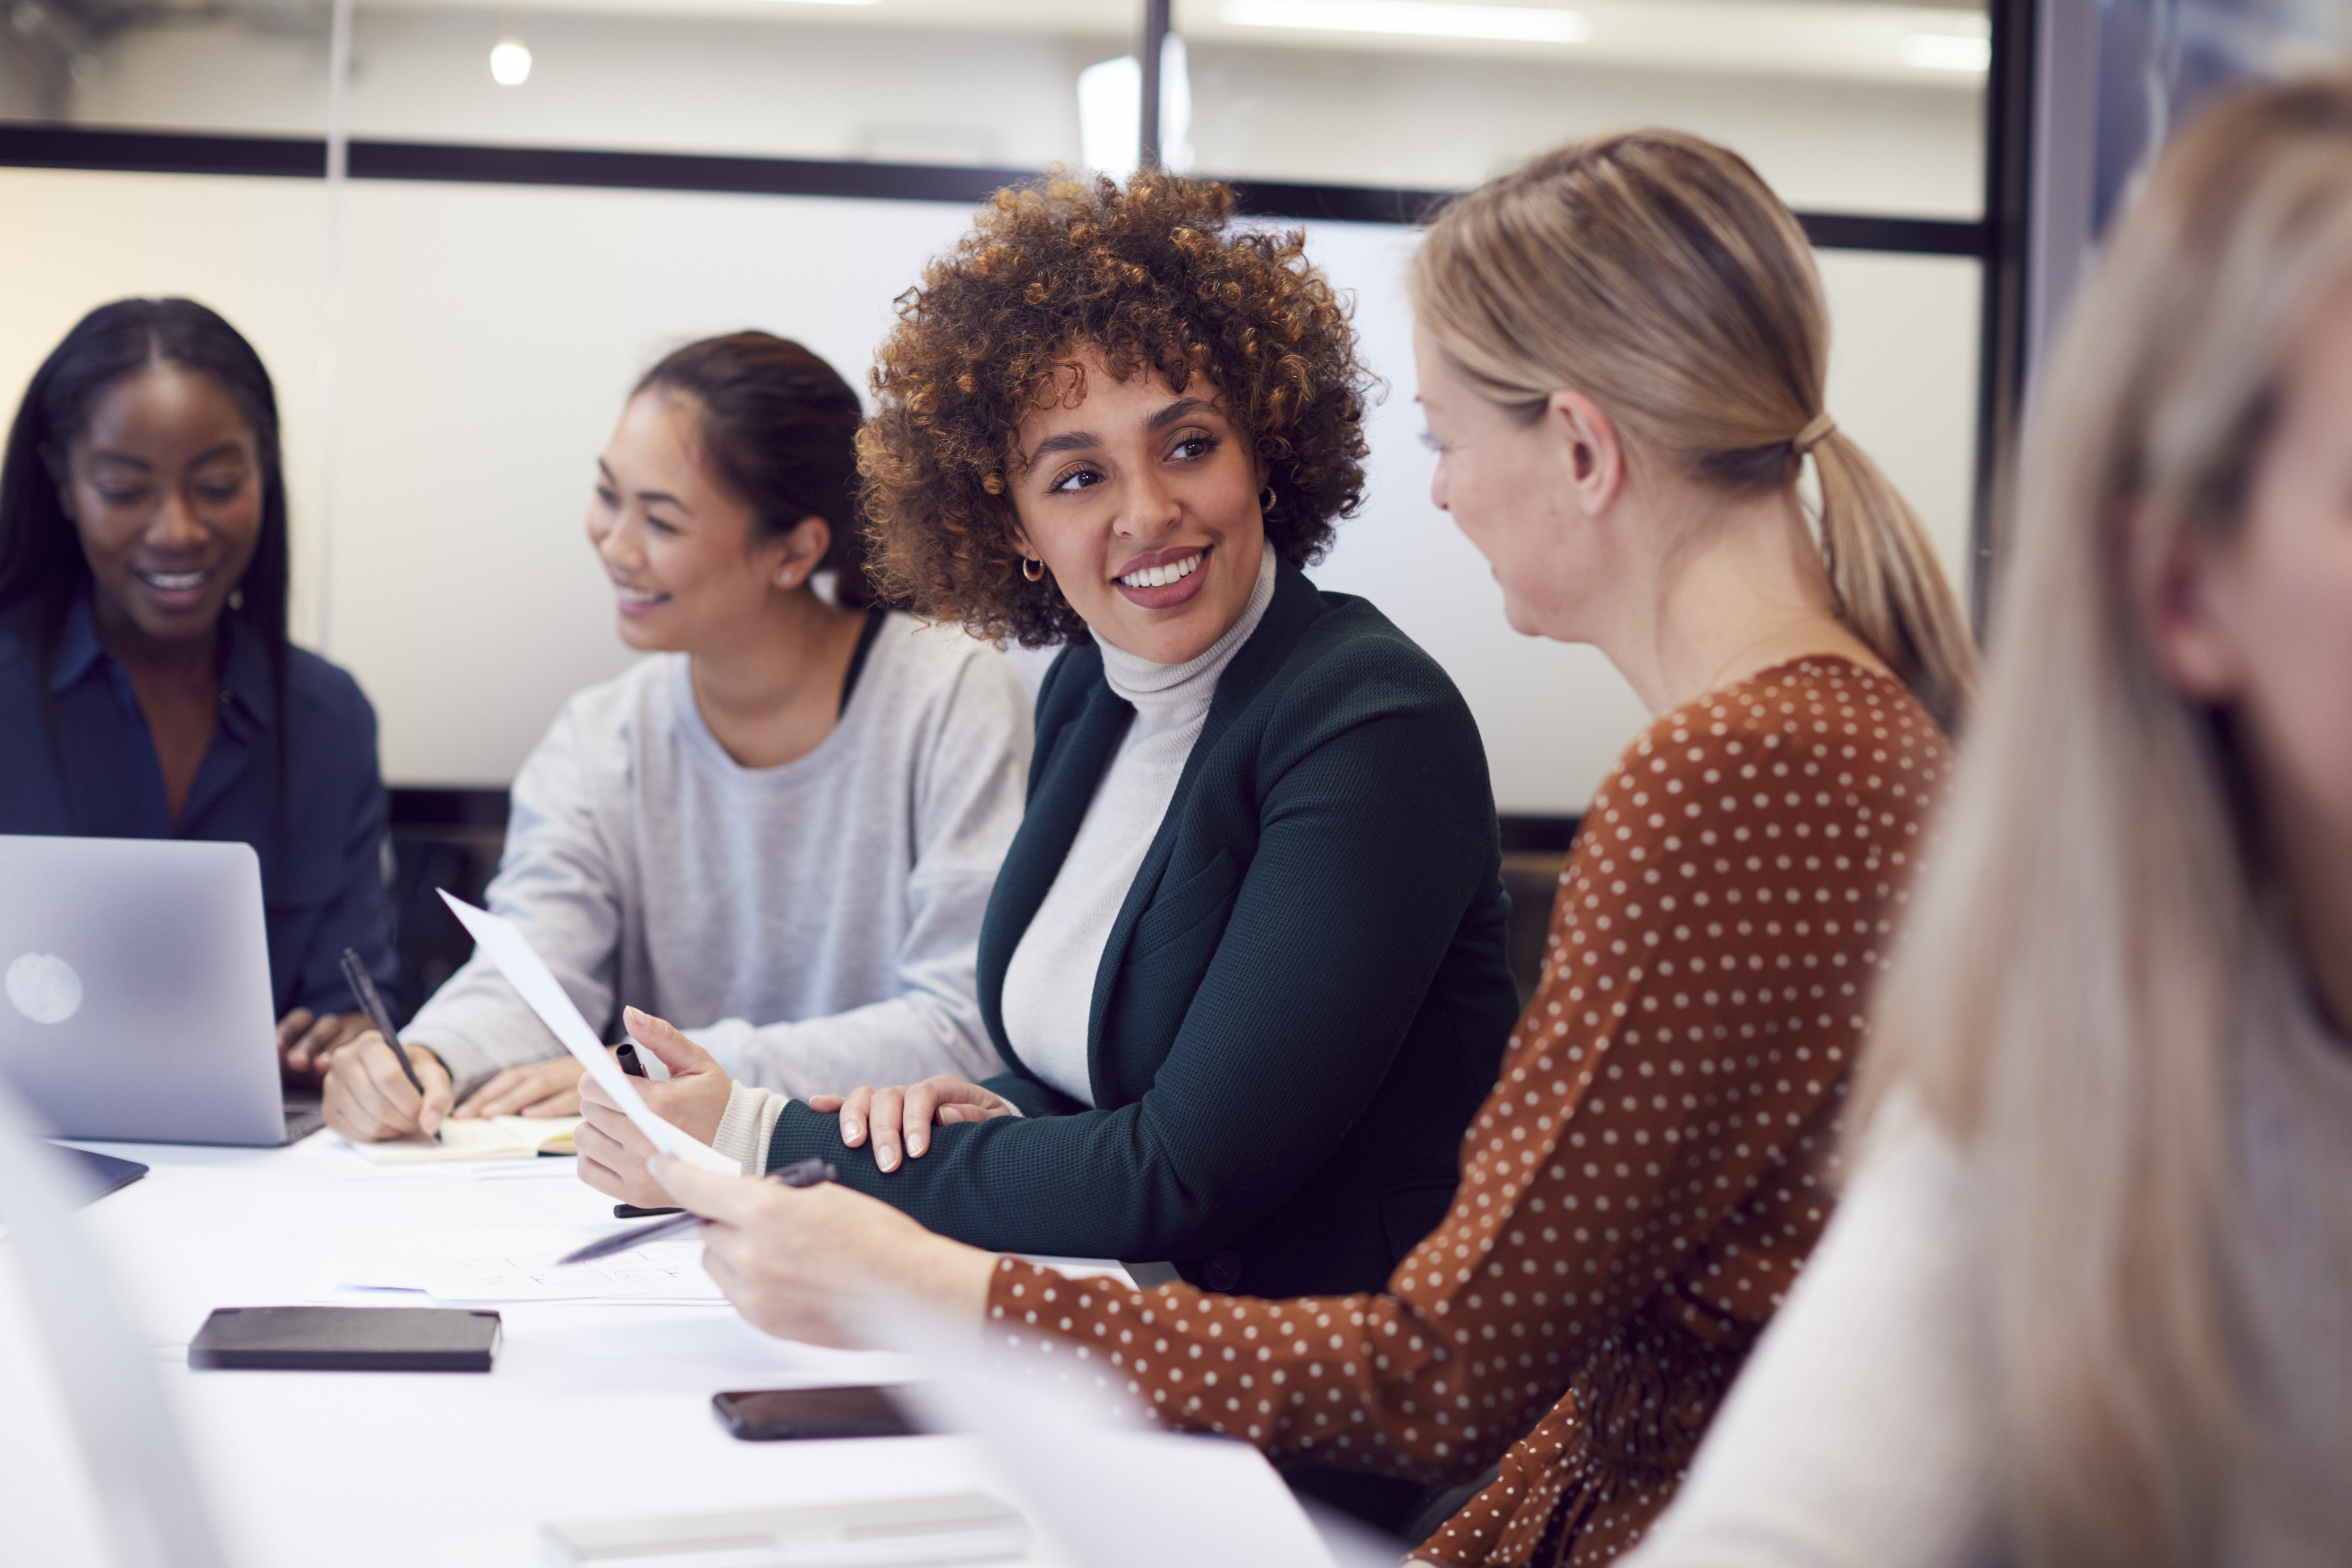 Get started with Valley's Women in Business Program